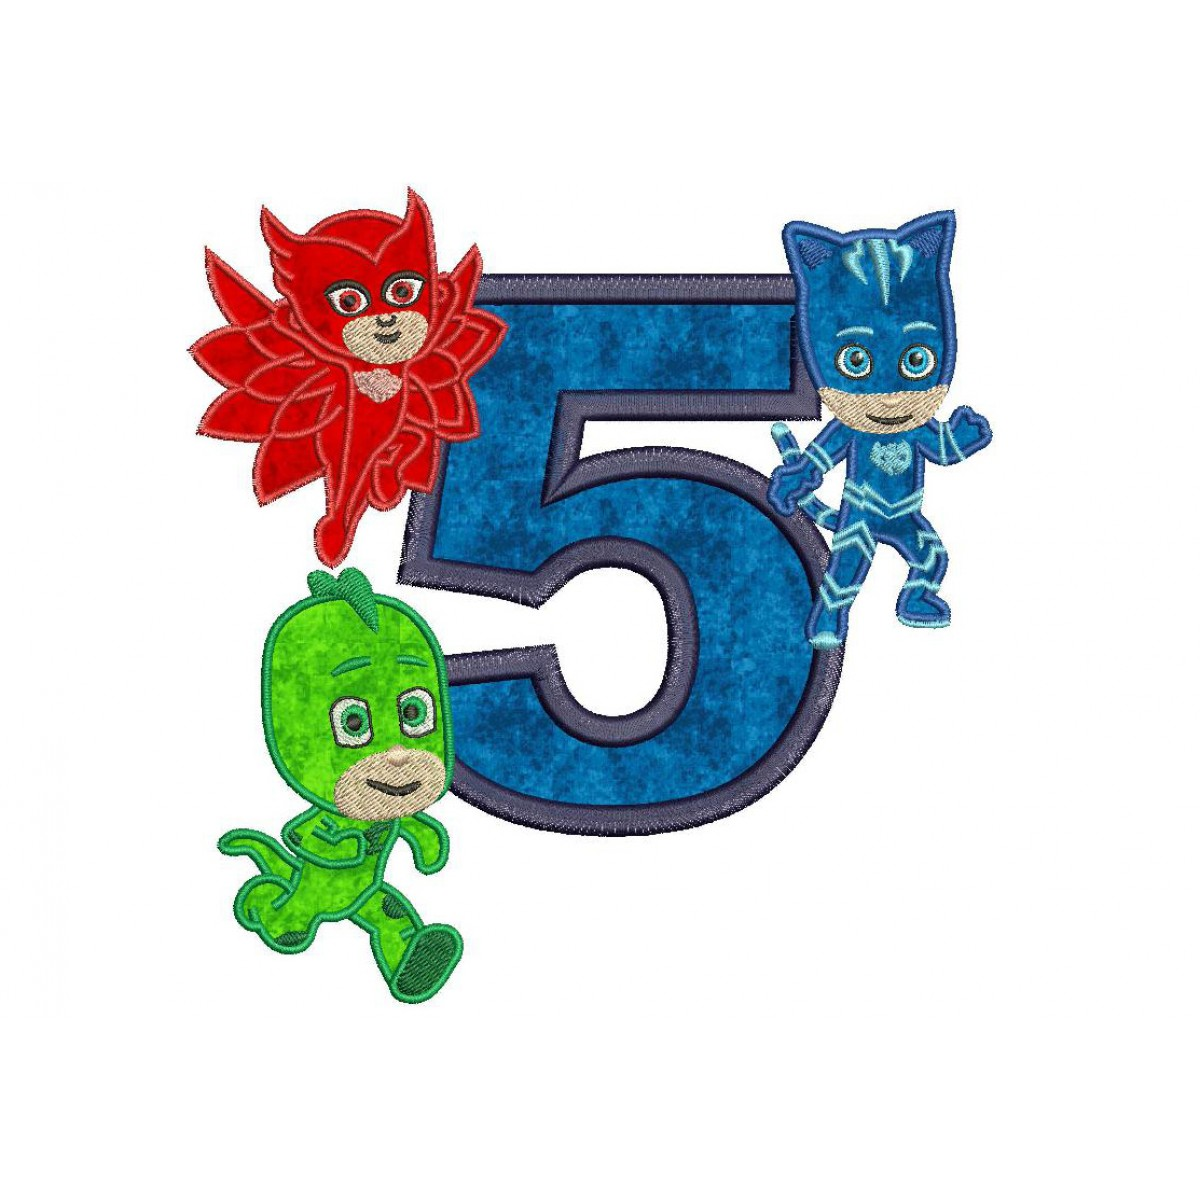 Pj Masks 5th Birthday Embroidery Applique Design